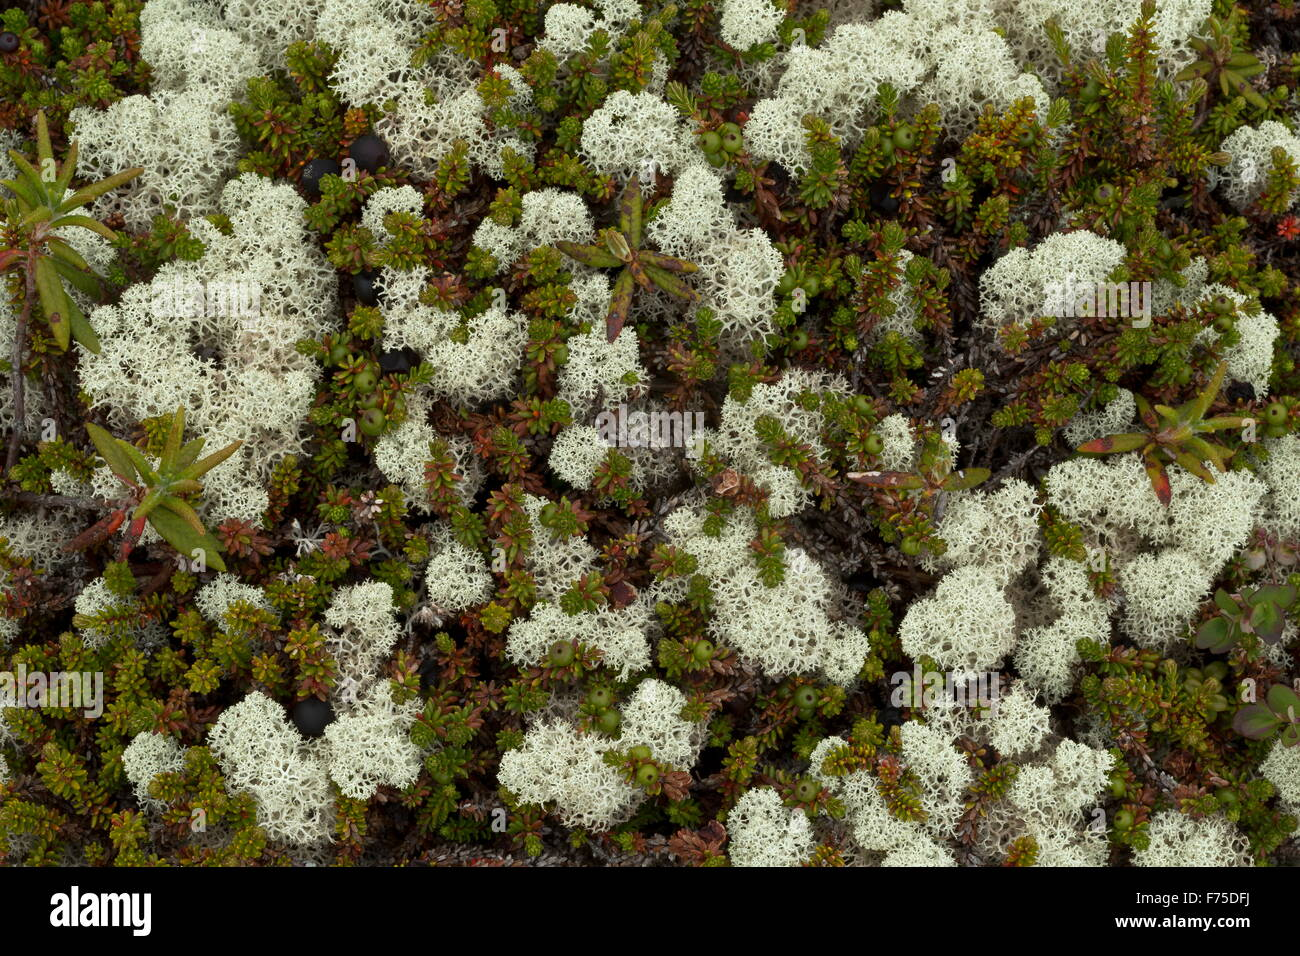 Crowberry and  lichens in boreal tundra at L'anse aux meadows, Newfoundland - Stock Image